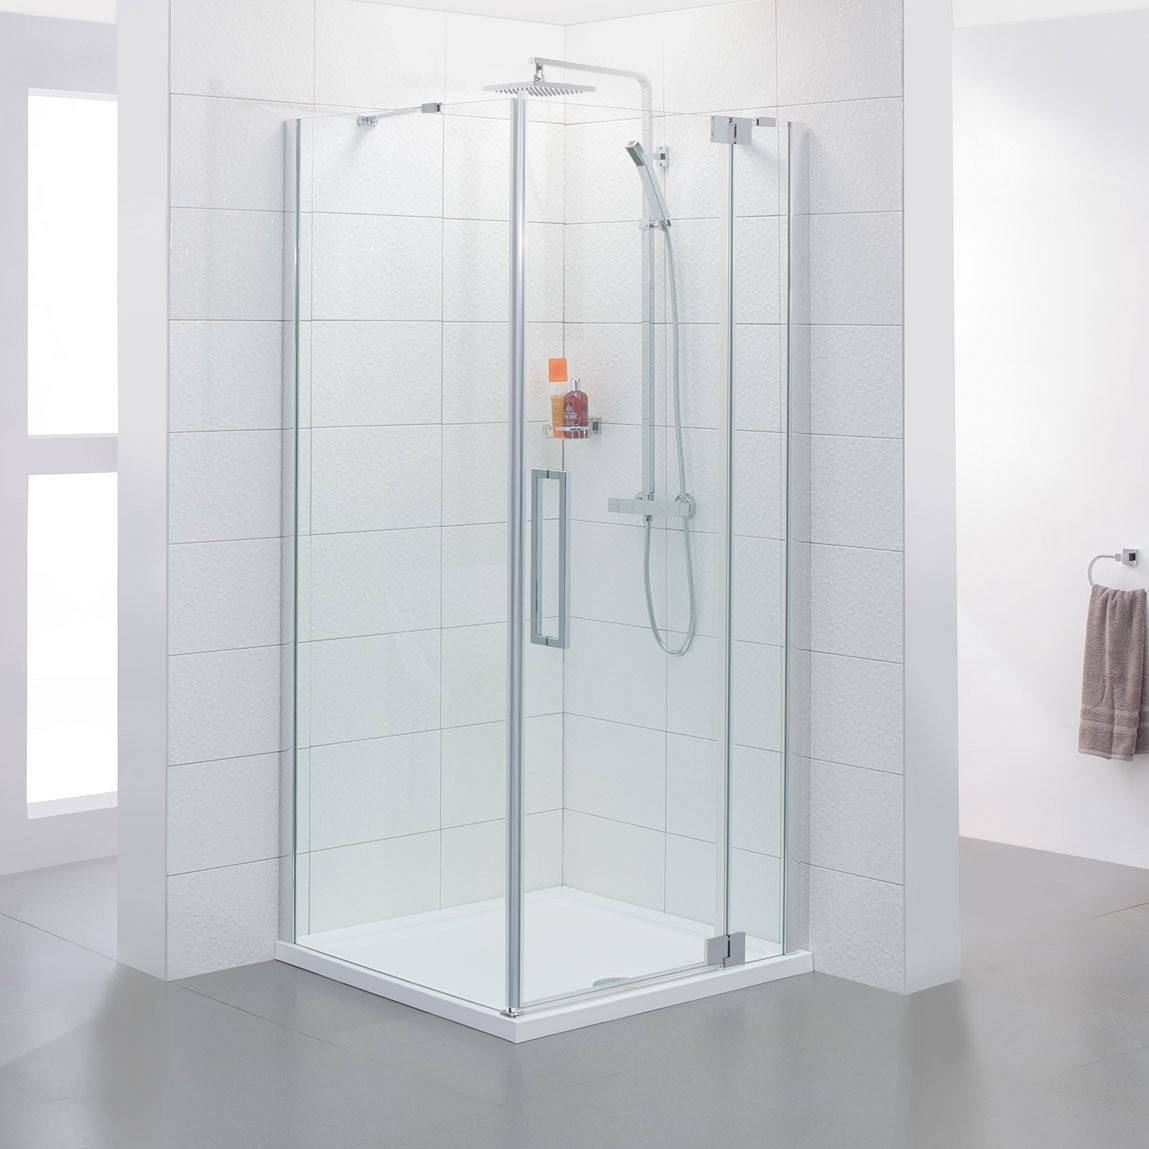 Install shower enclosure | ML Building Direct